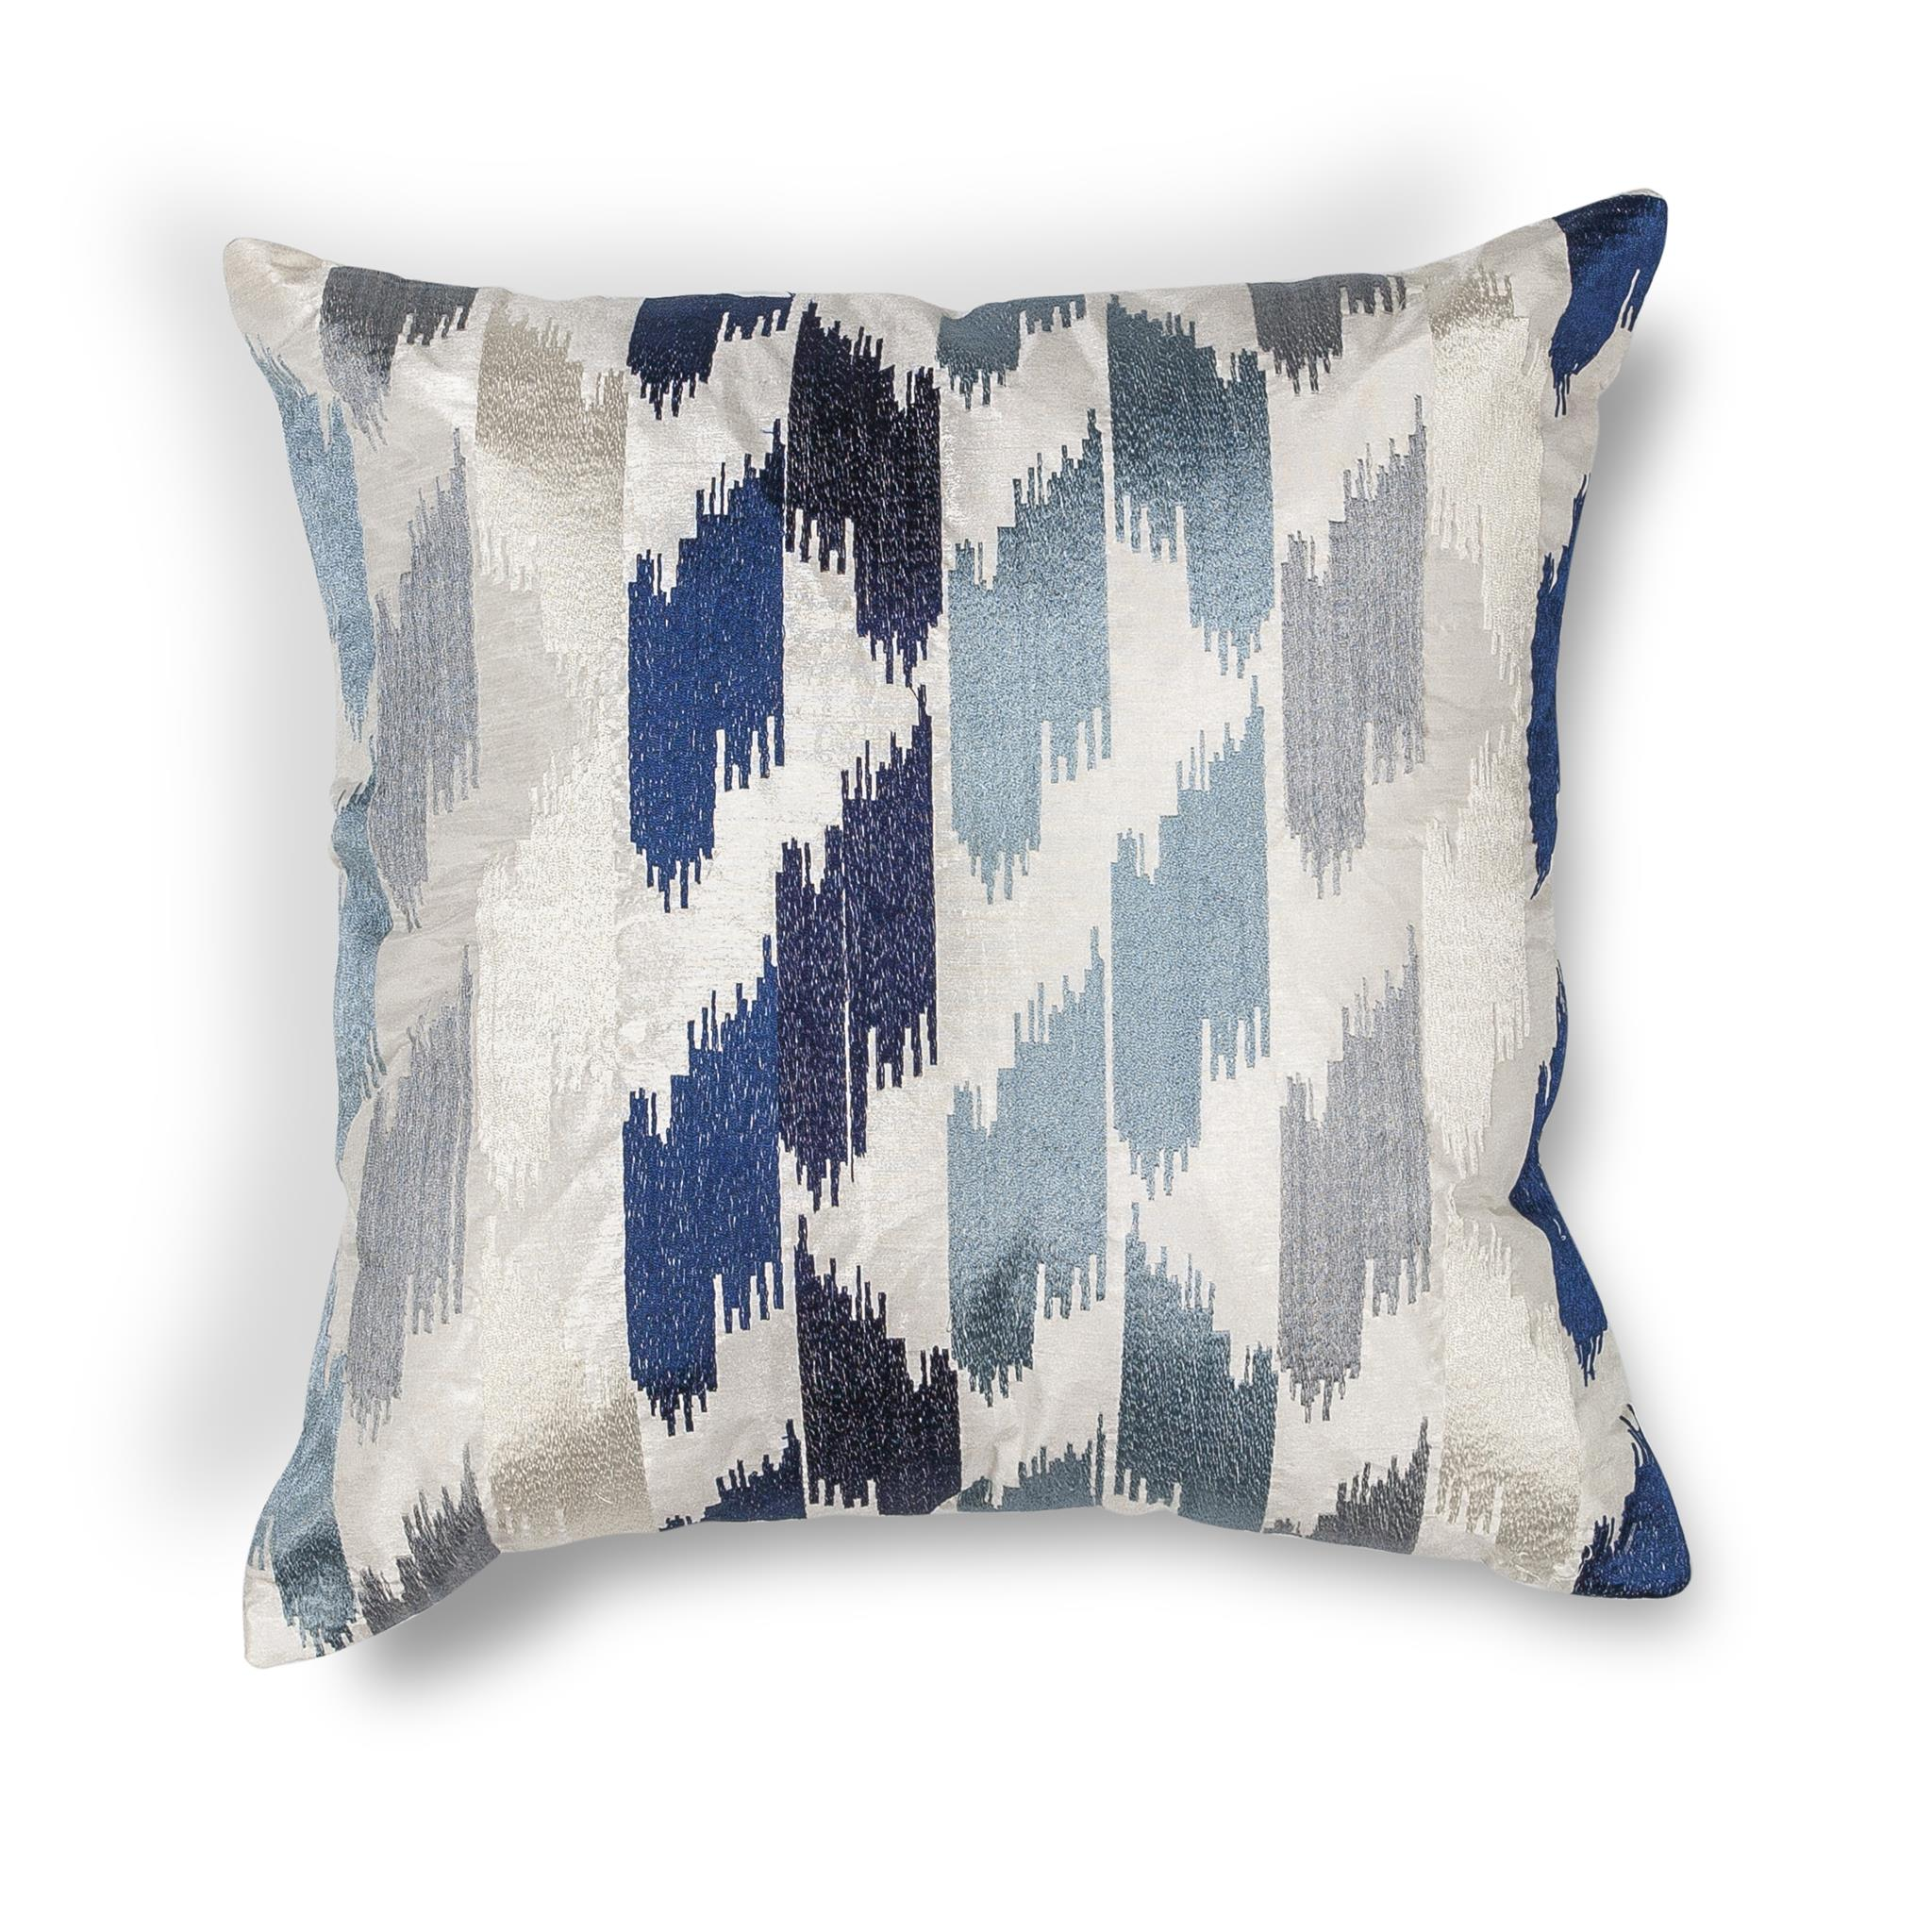 L206 Donny Osmond Home Blue Watercolors Pillow